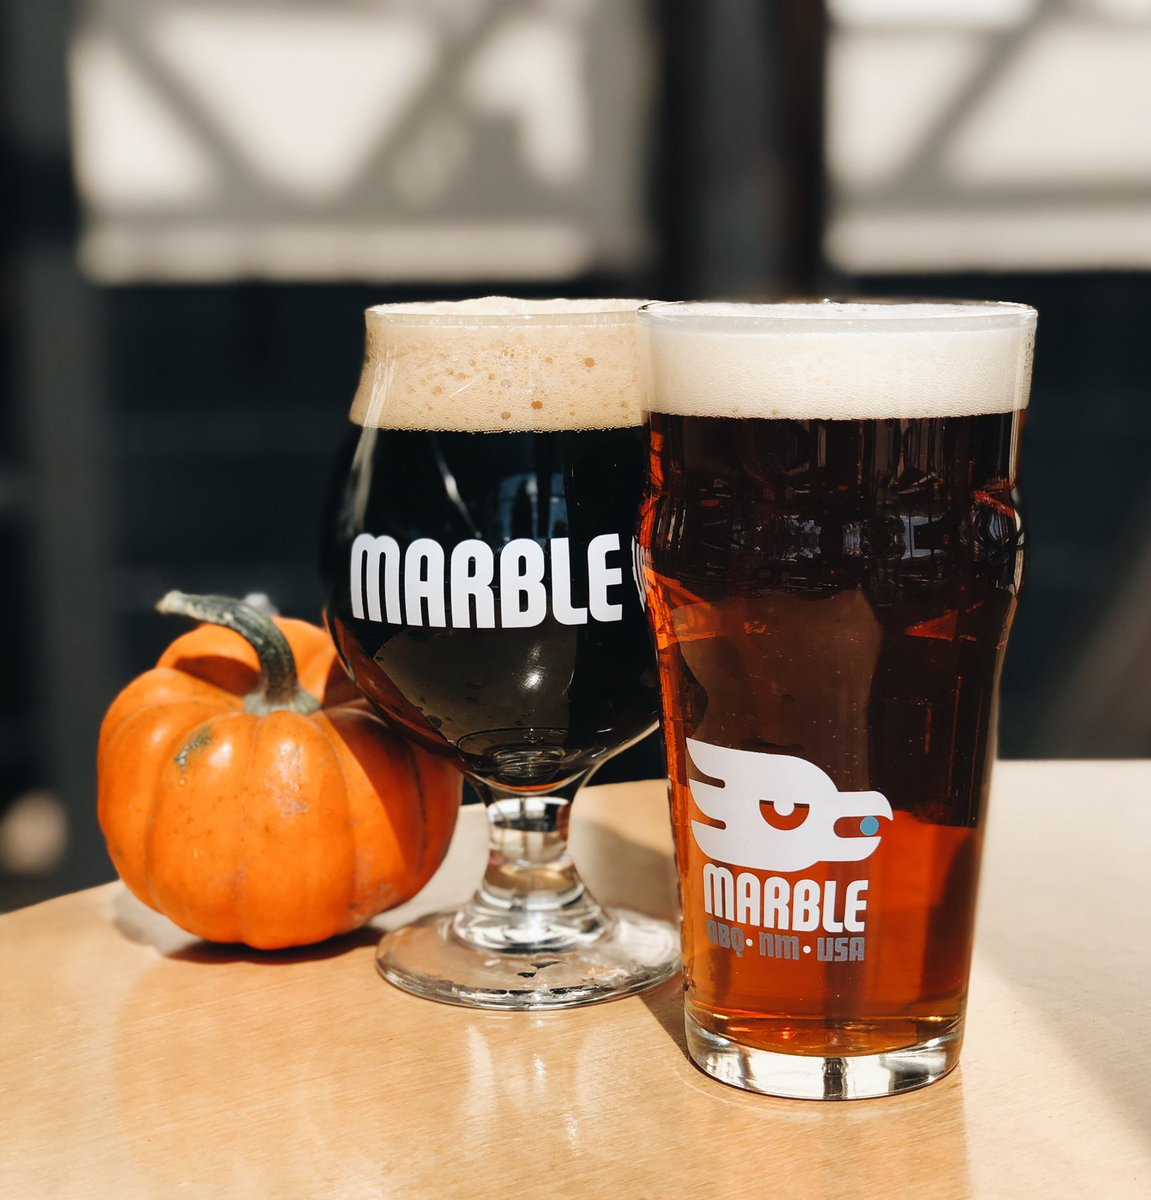 Pick your pumpkin! Pumpkin Ale and Pumpkin Noir are both available on draft at all locations!  #craftbeer #pumpkinbeer #pumpkin #fall #nmbeer #abqbeer #marblebrewery #pumpkinale #pumpkinnoir https://t.co/3p7OkXzhKg